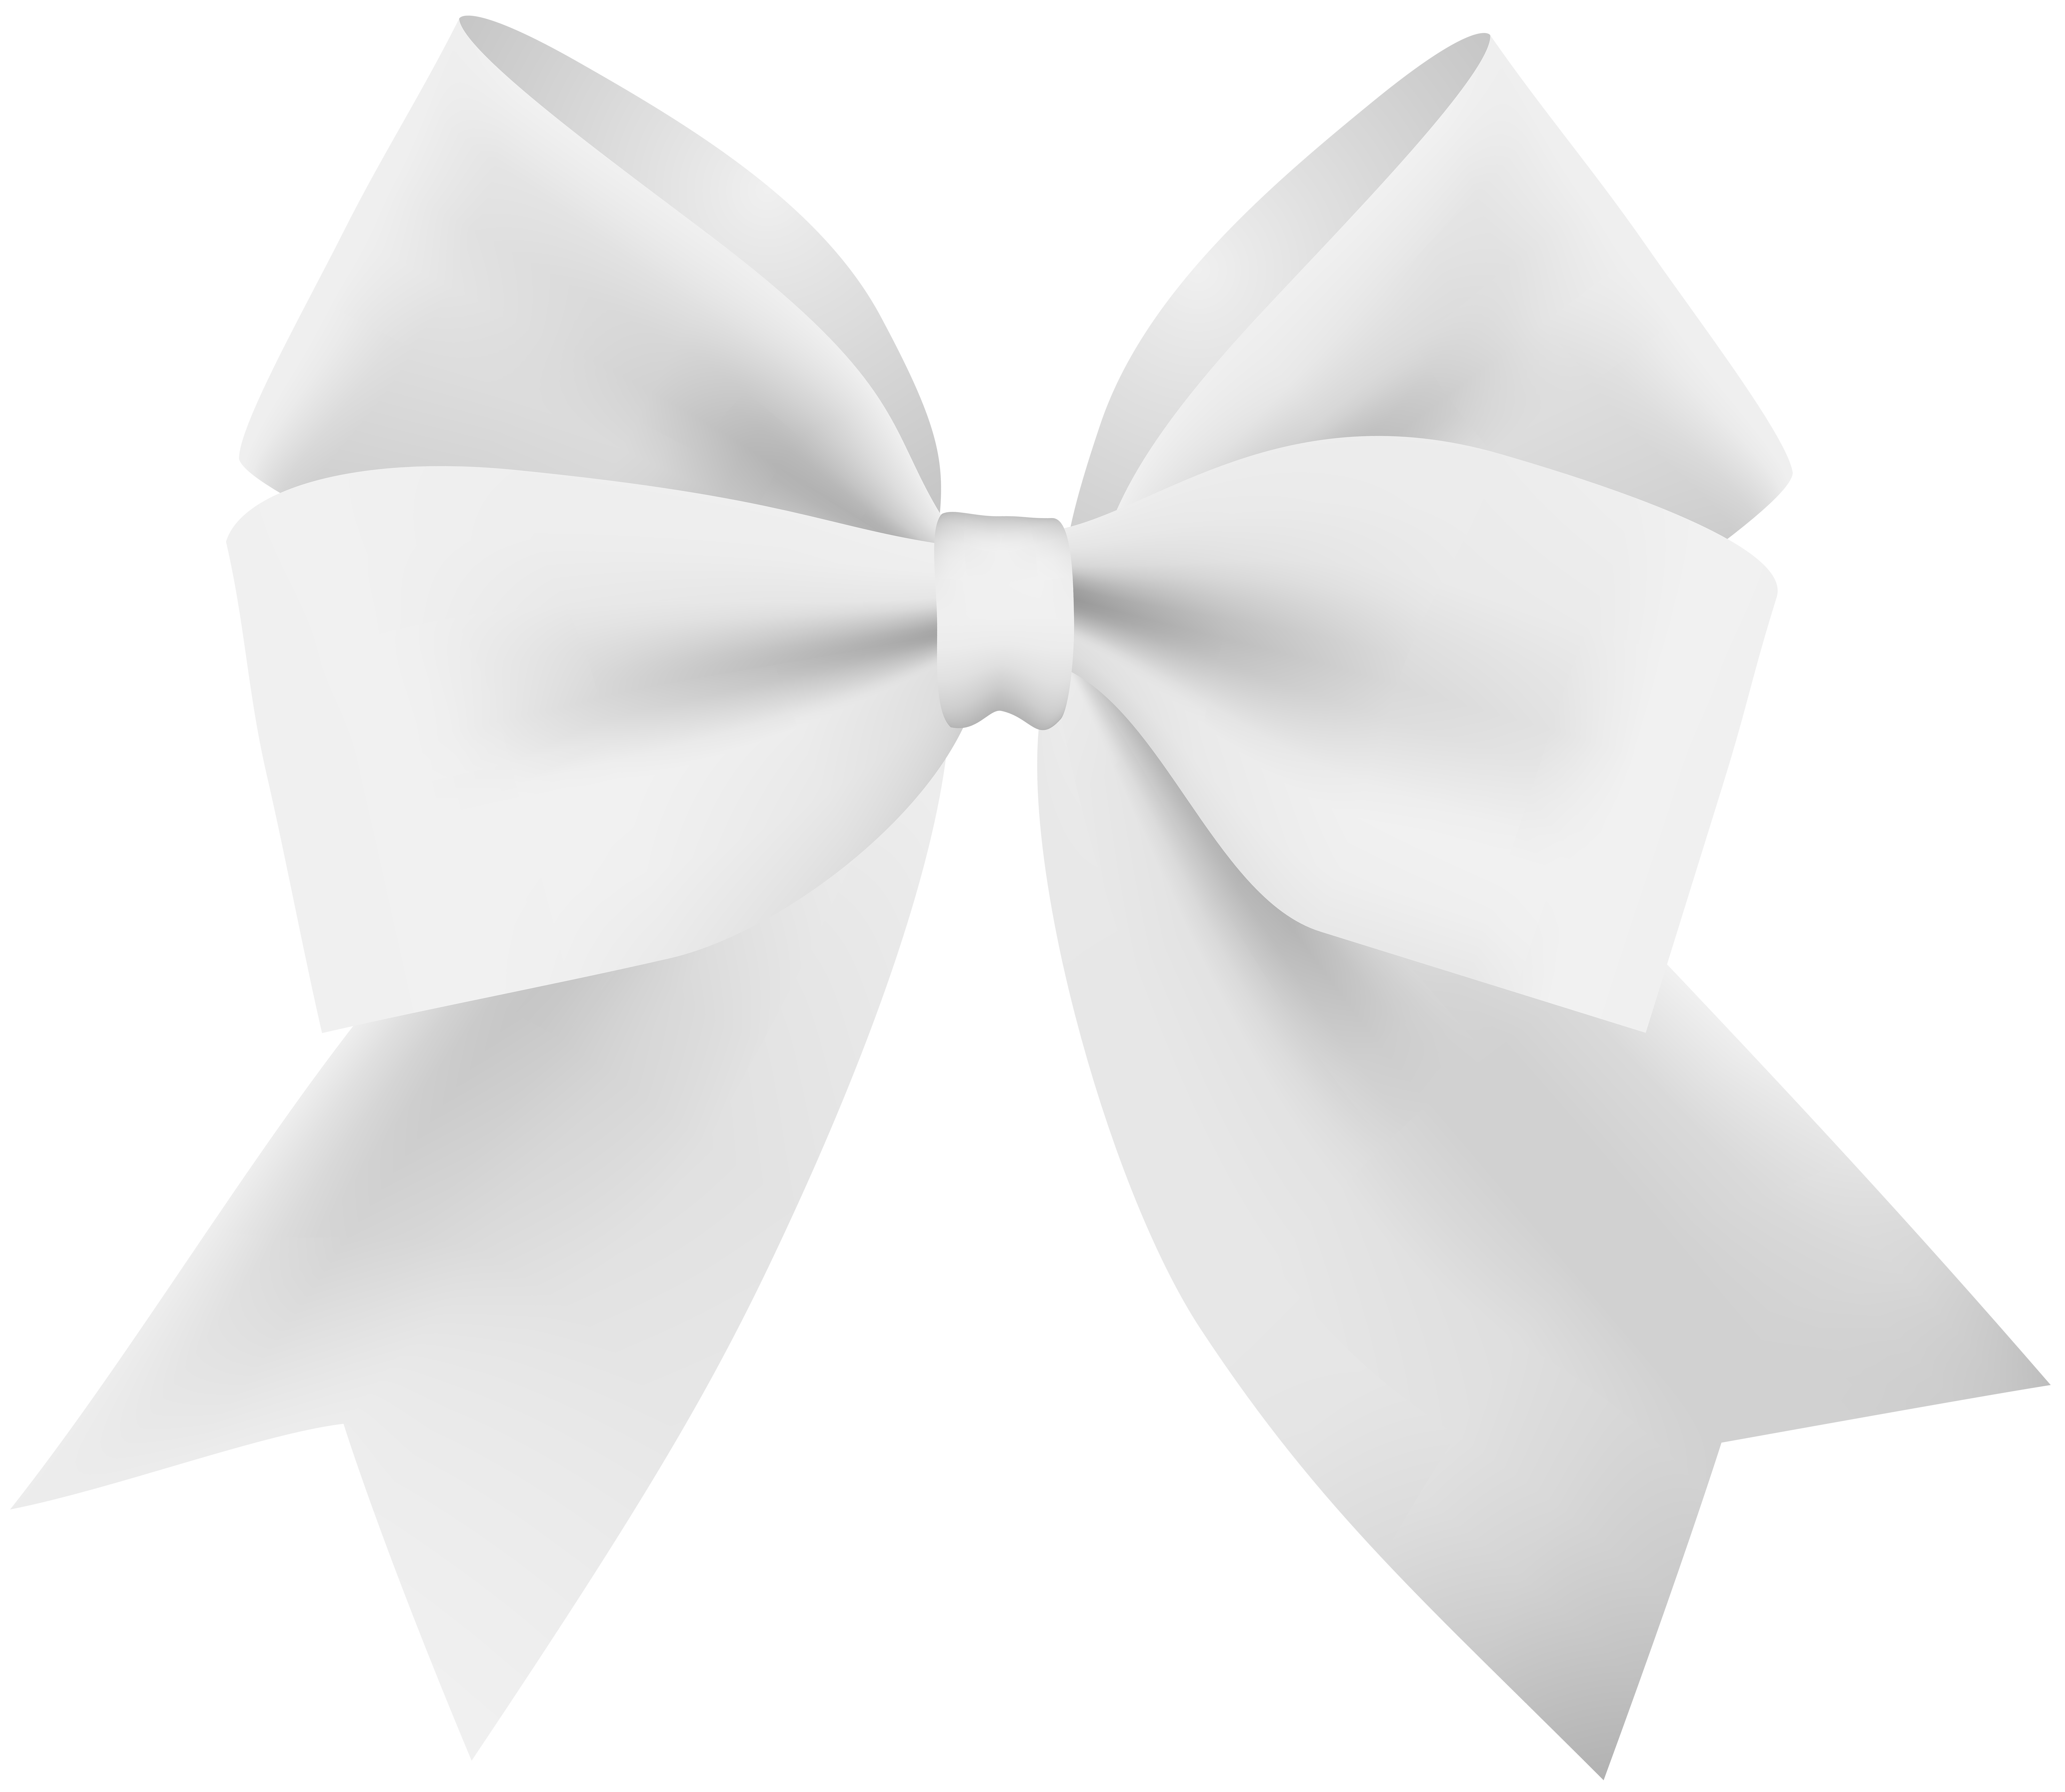 White ribbon bow png. Transparent image gallery yopriceville